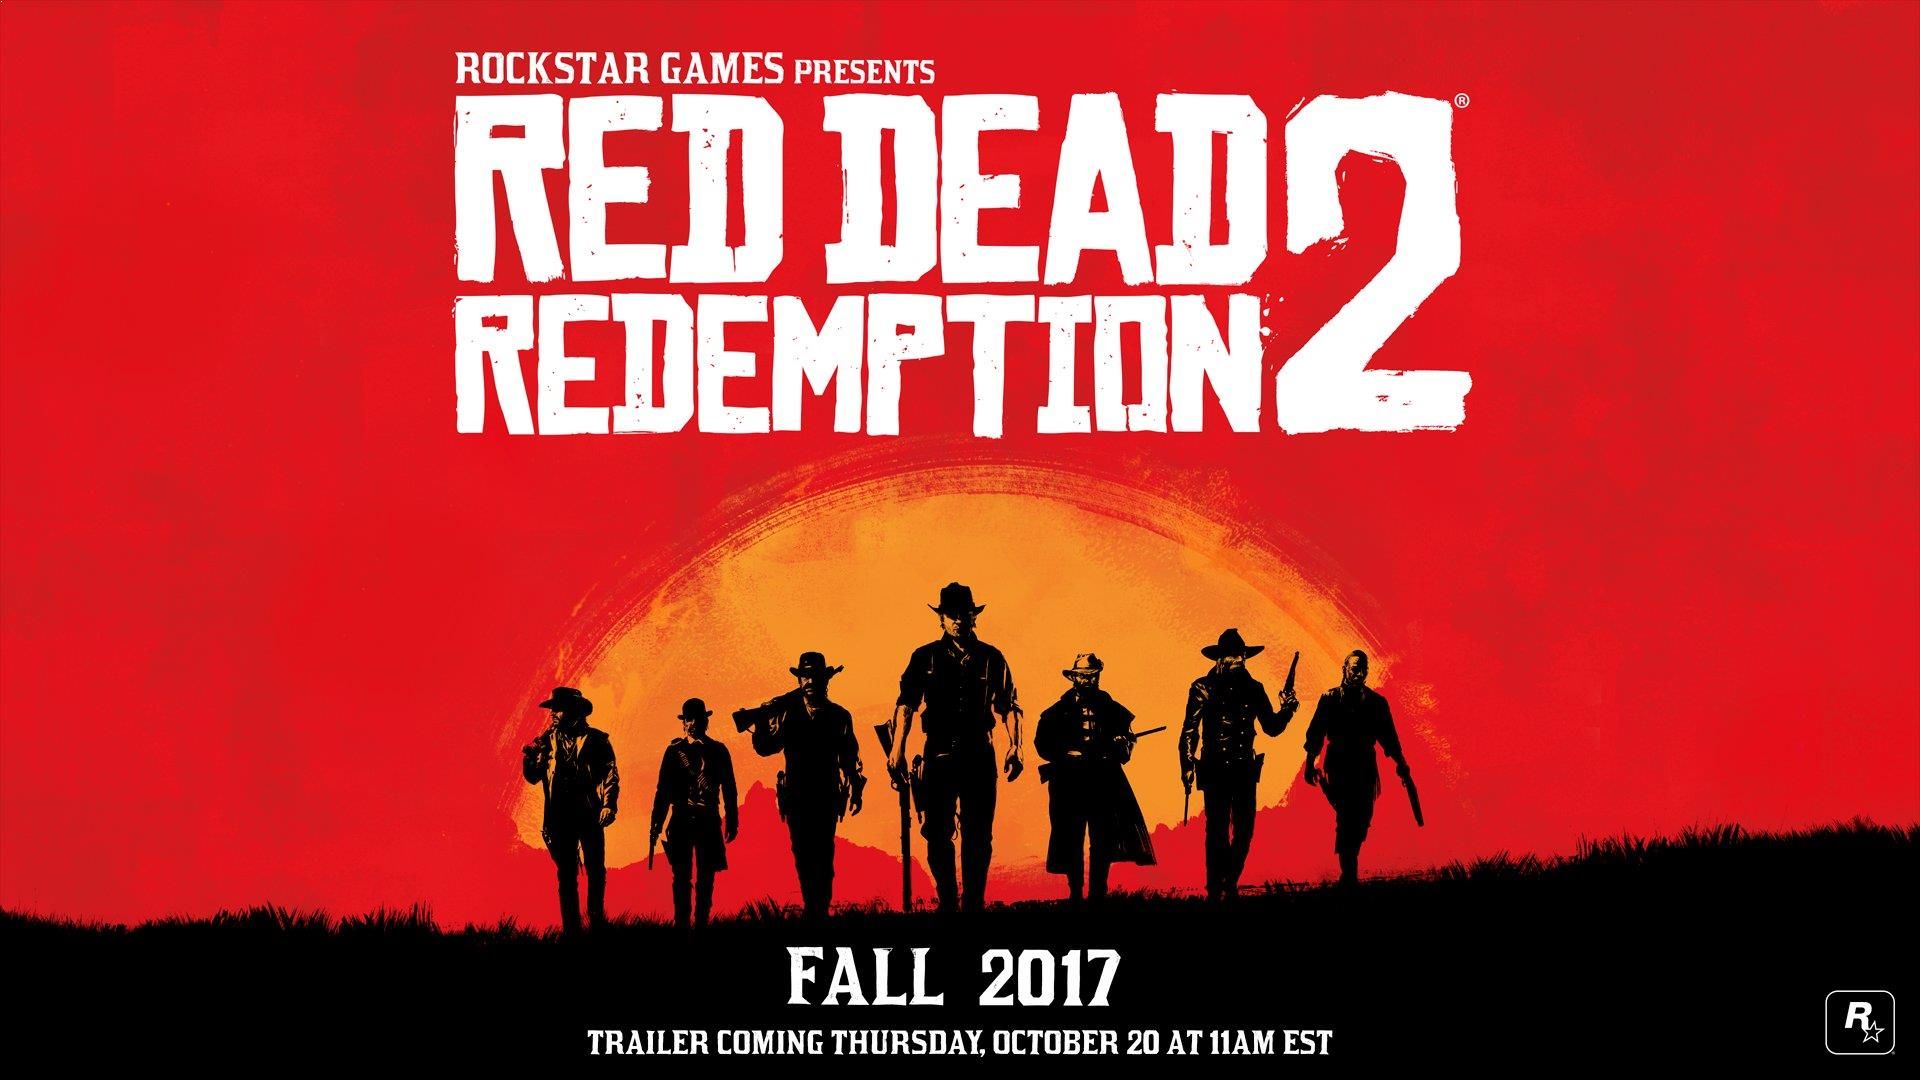 The release time of Red Dead Redemption 2 announced